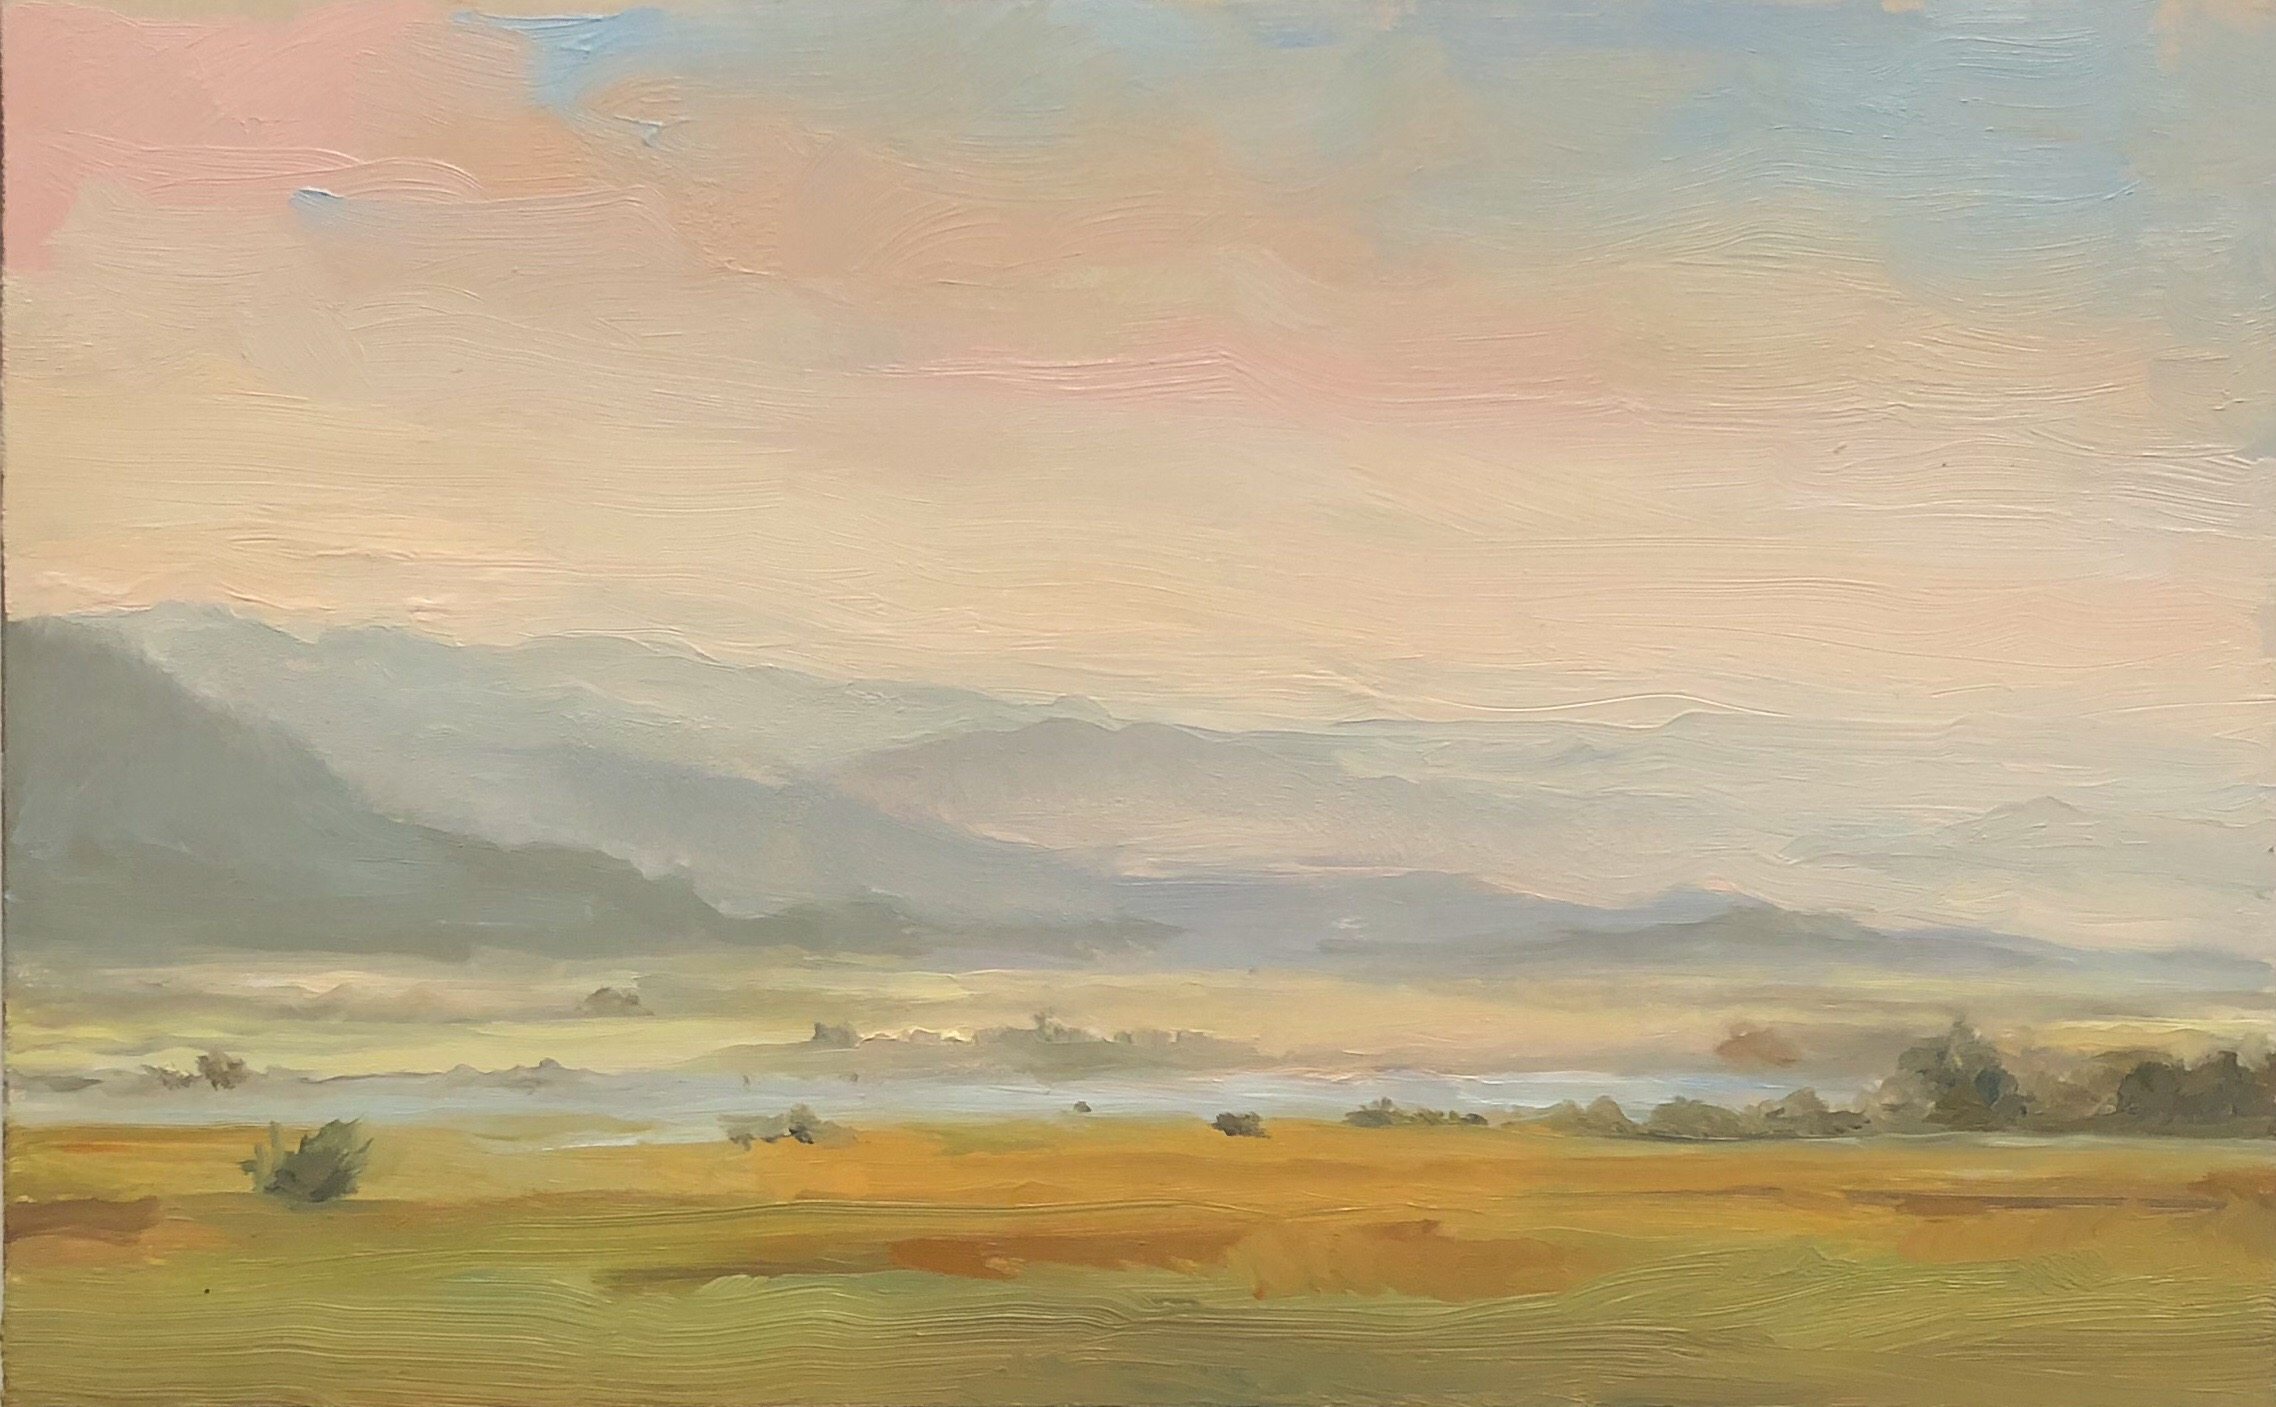 View West from Victor, ID 2018 5 by 8 inches Oil on panel